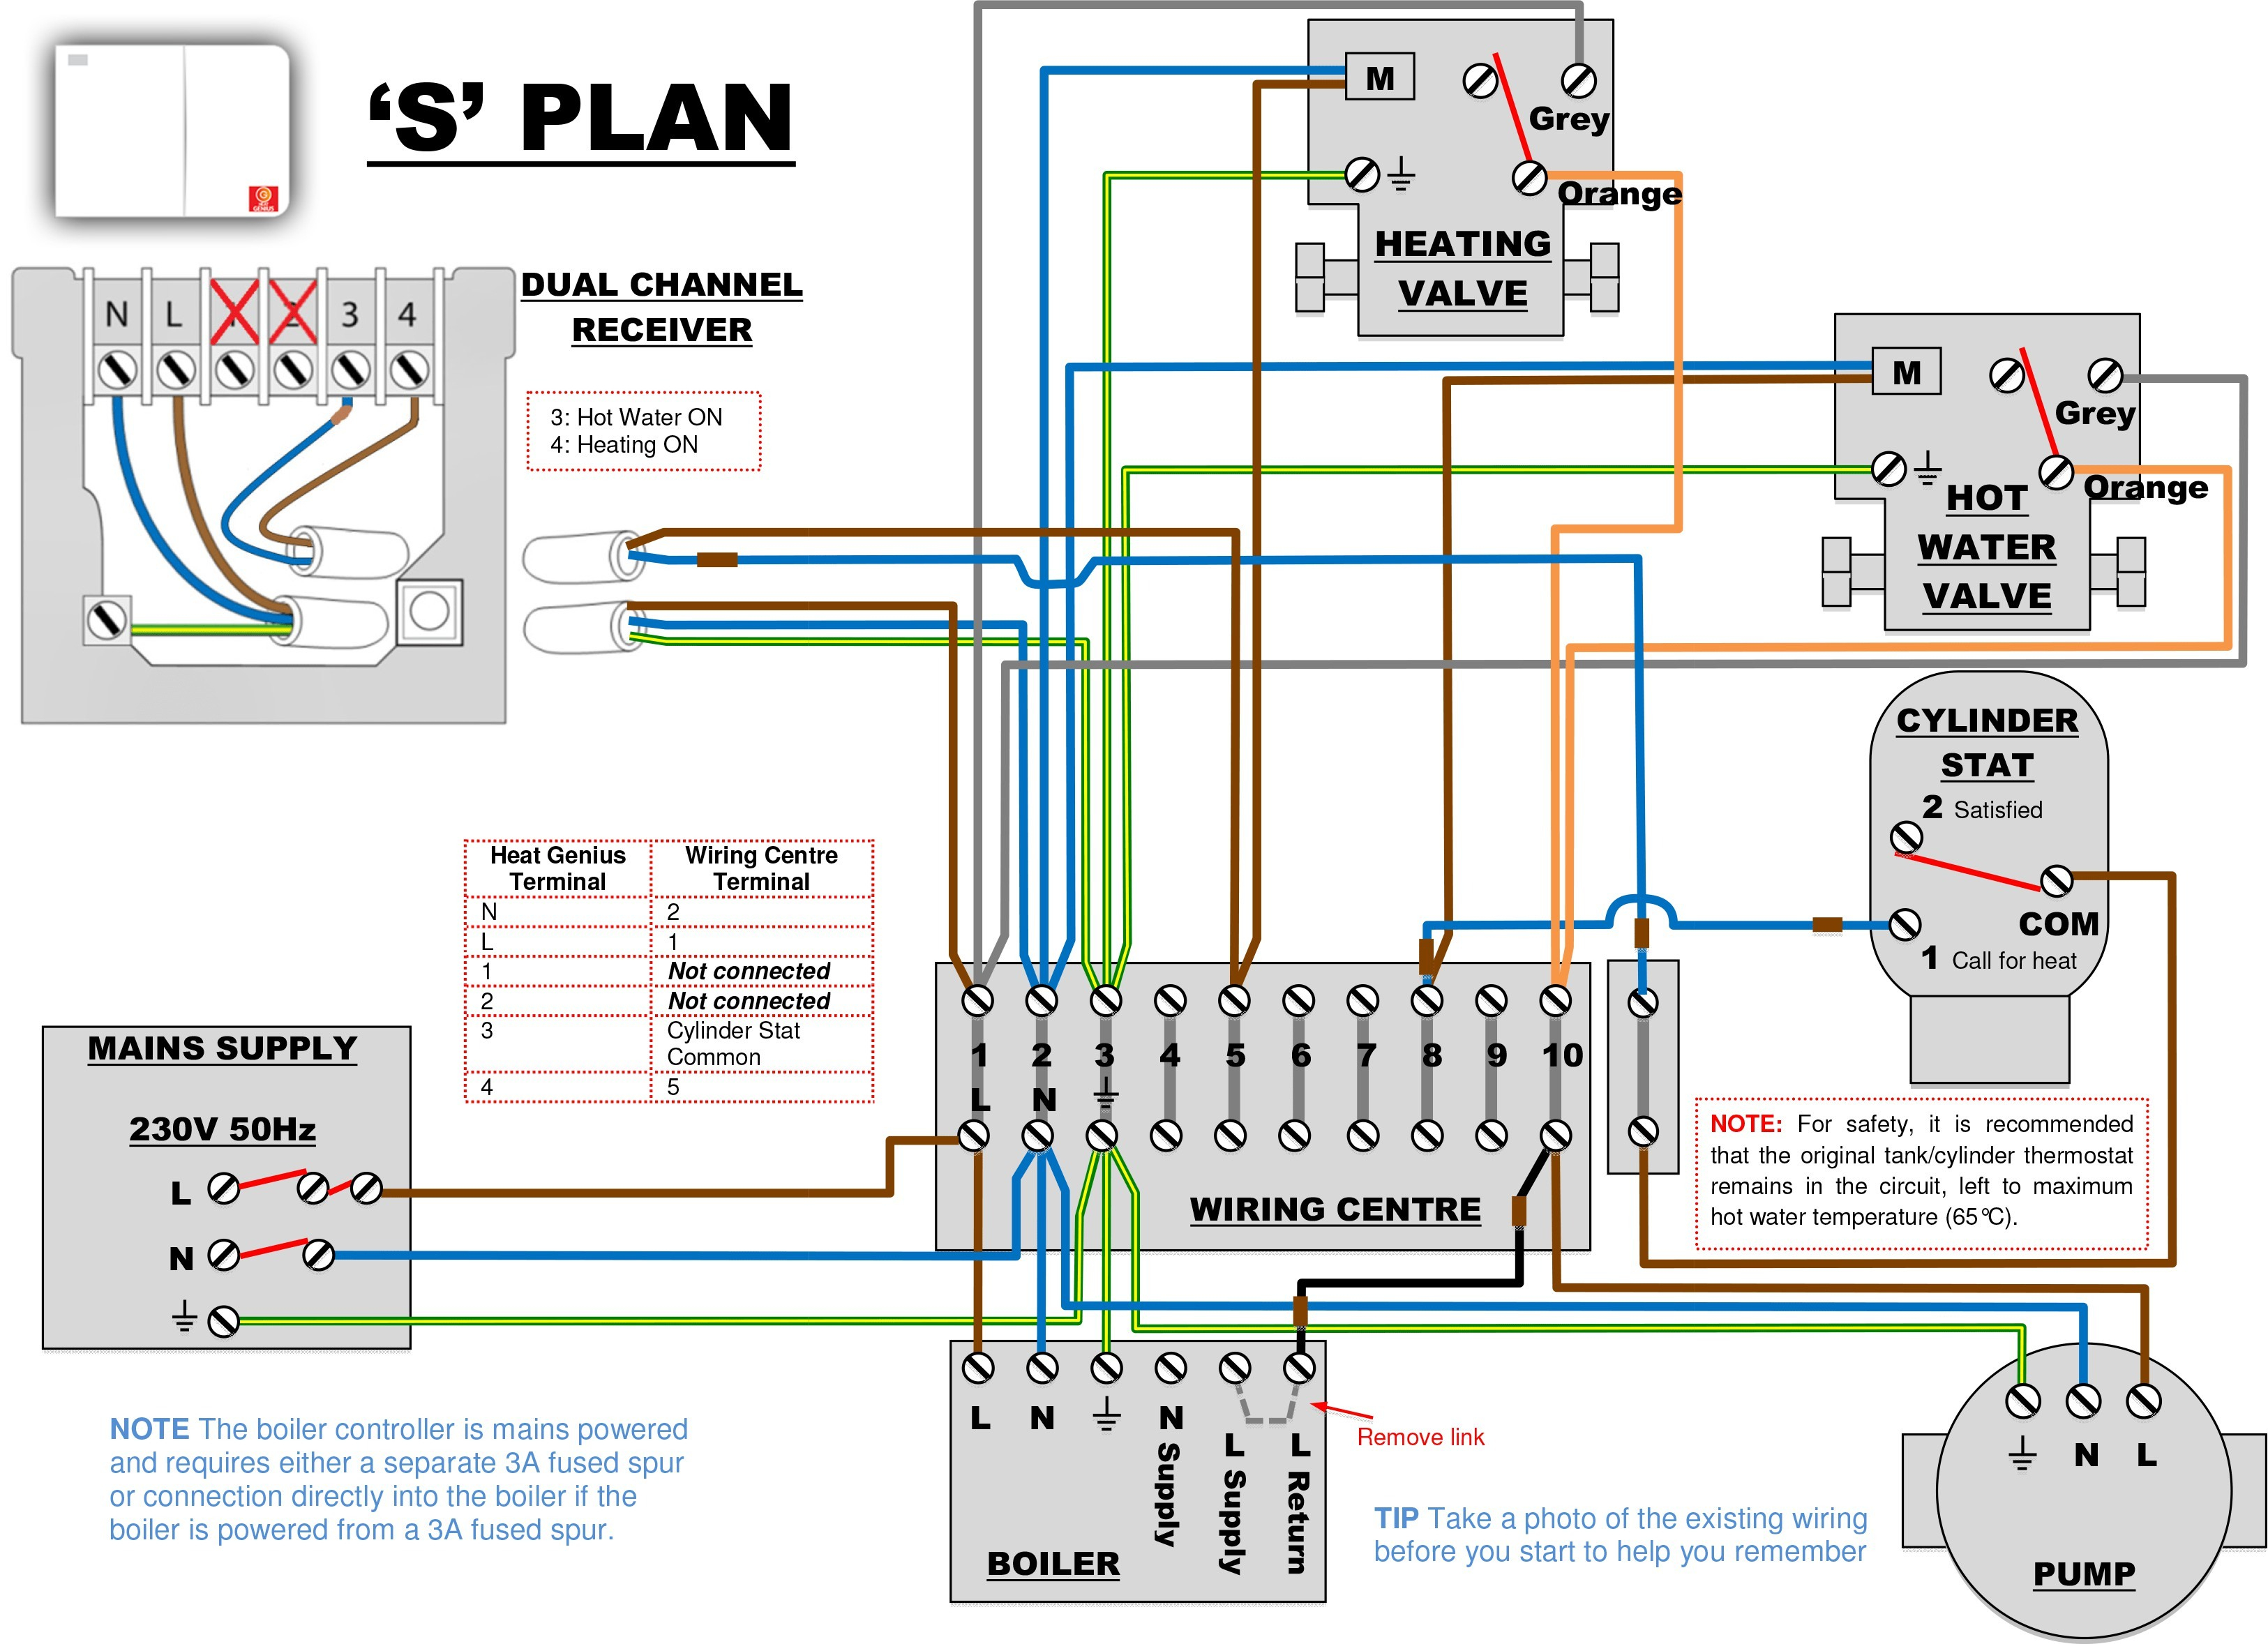 nest thermostat heat pump wiring diagram collection wiring diagram carrier evolution wiring diagram nest thermostat heat pump wiring diagram download heat pump thermostat wiring diagram new nest thermostat download wiring diagram